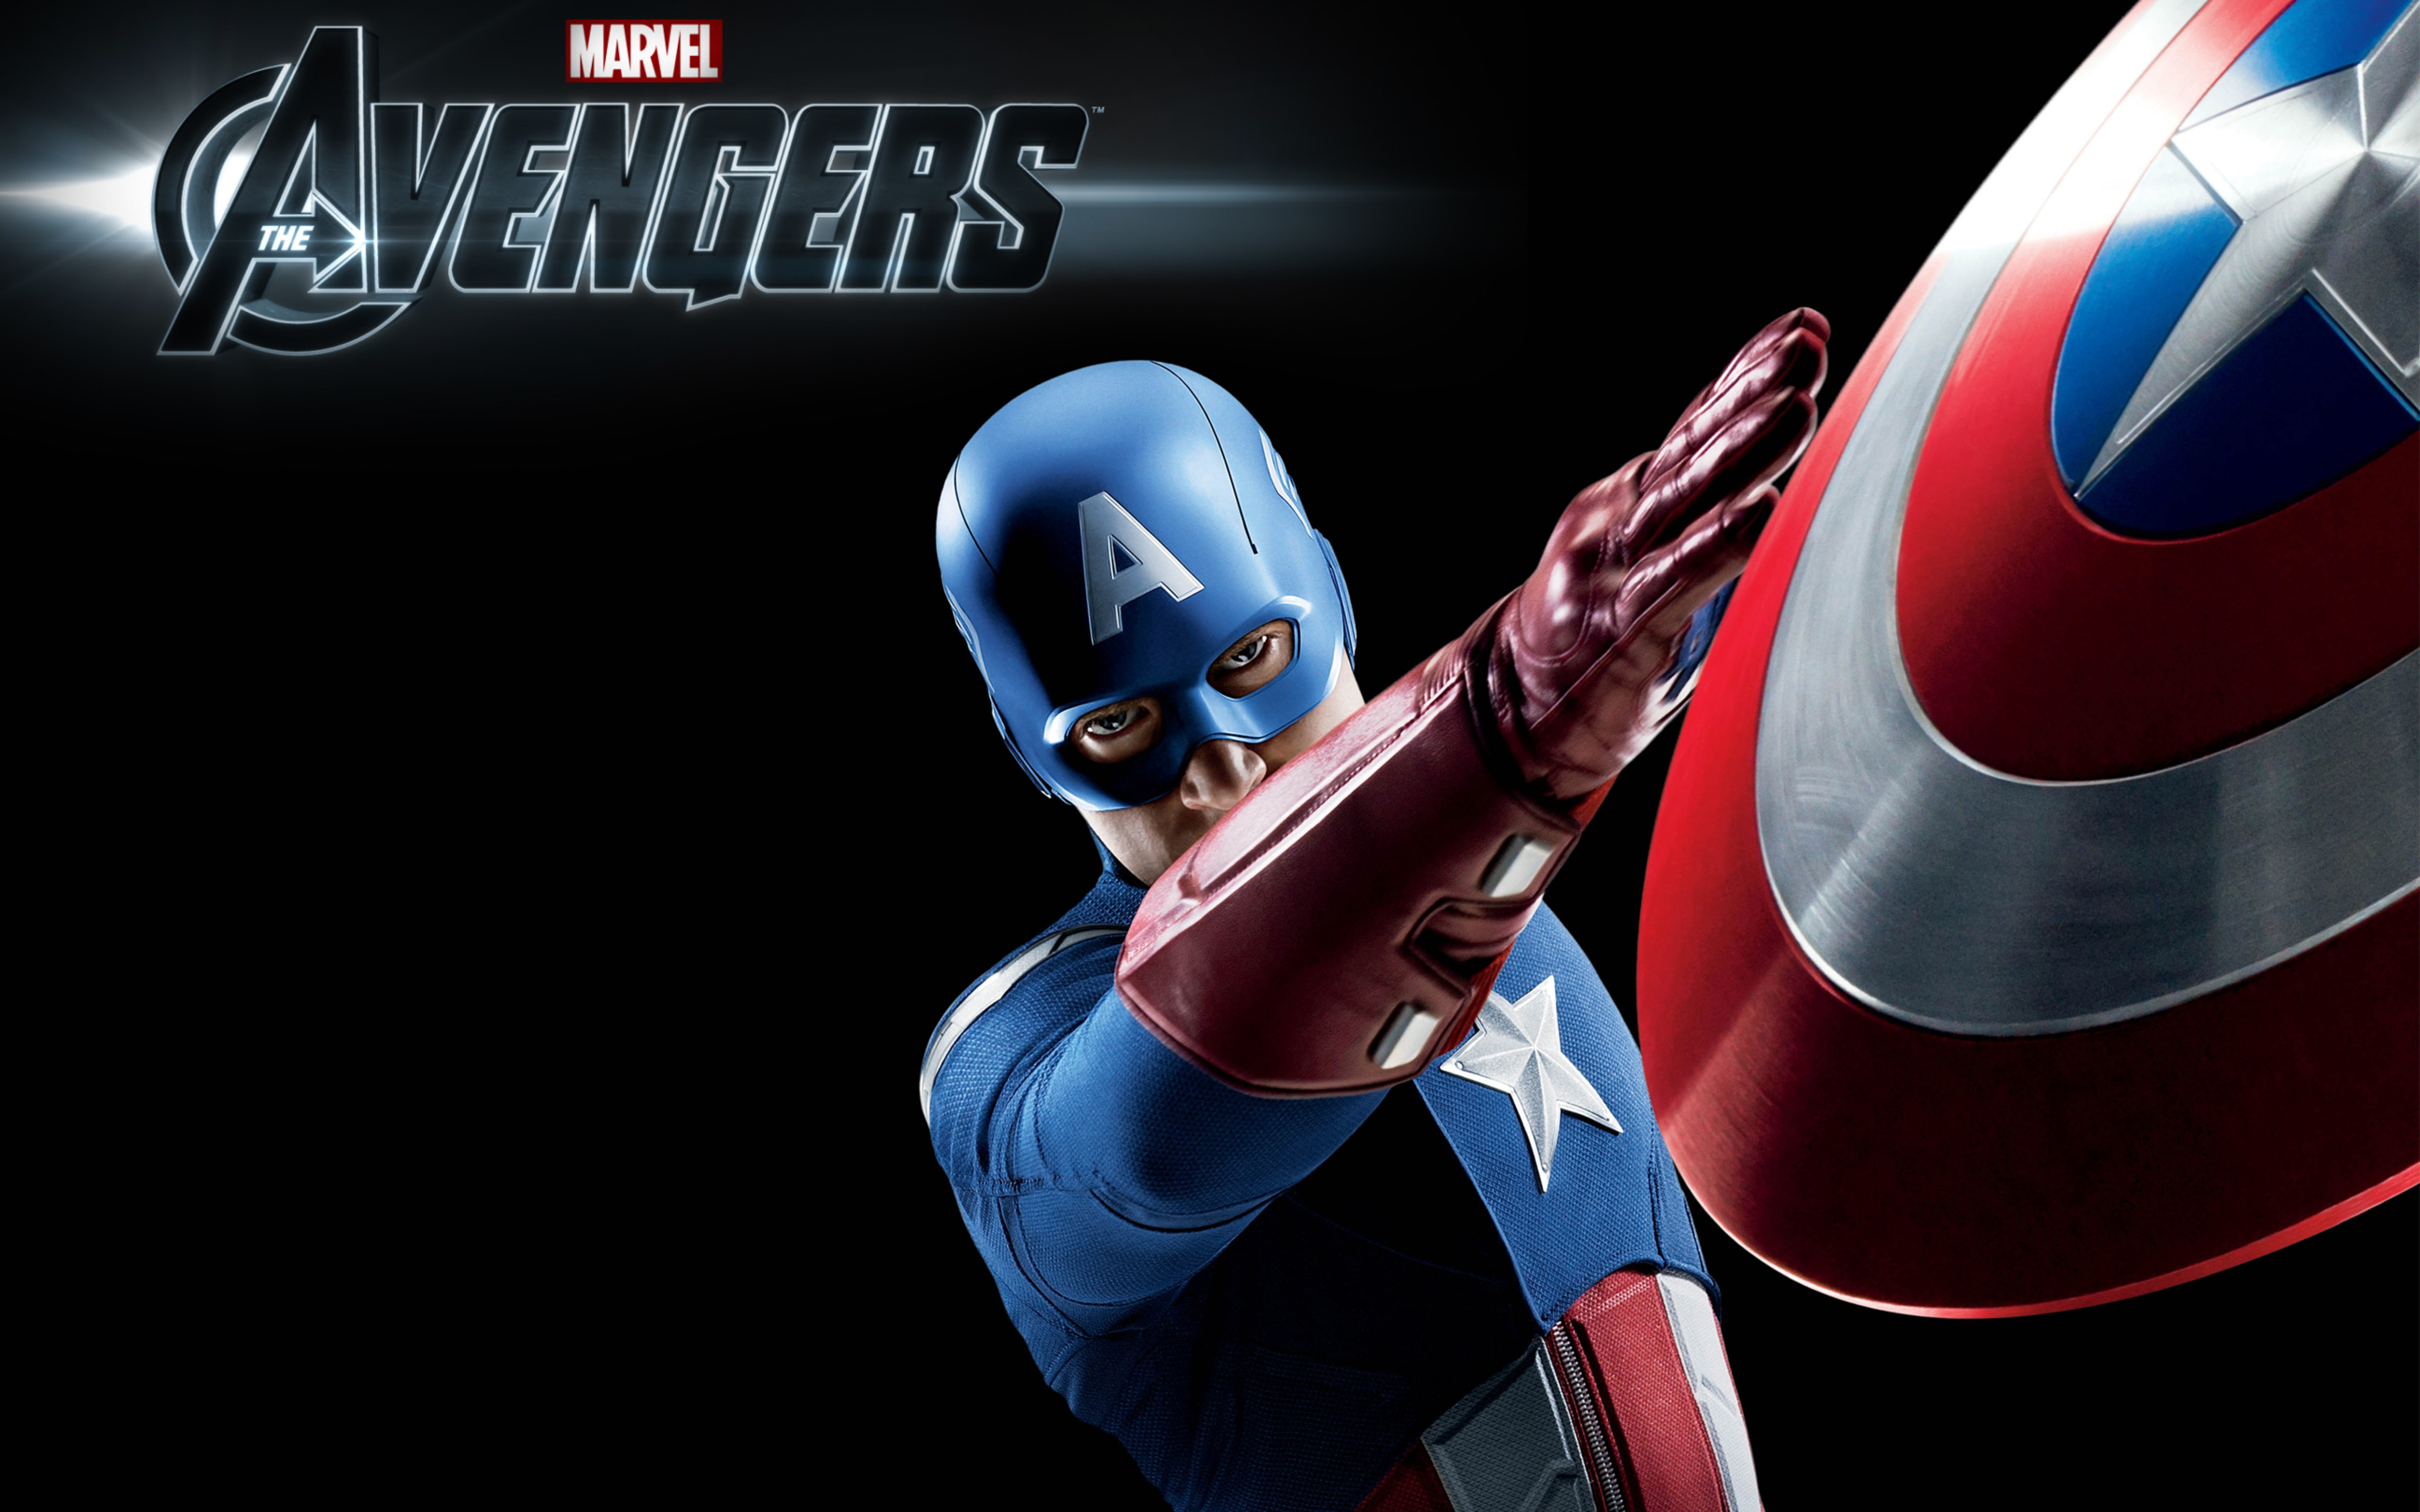 chris evans marvel super hero captain america first avenger hd wallpaper